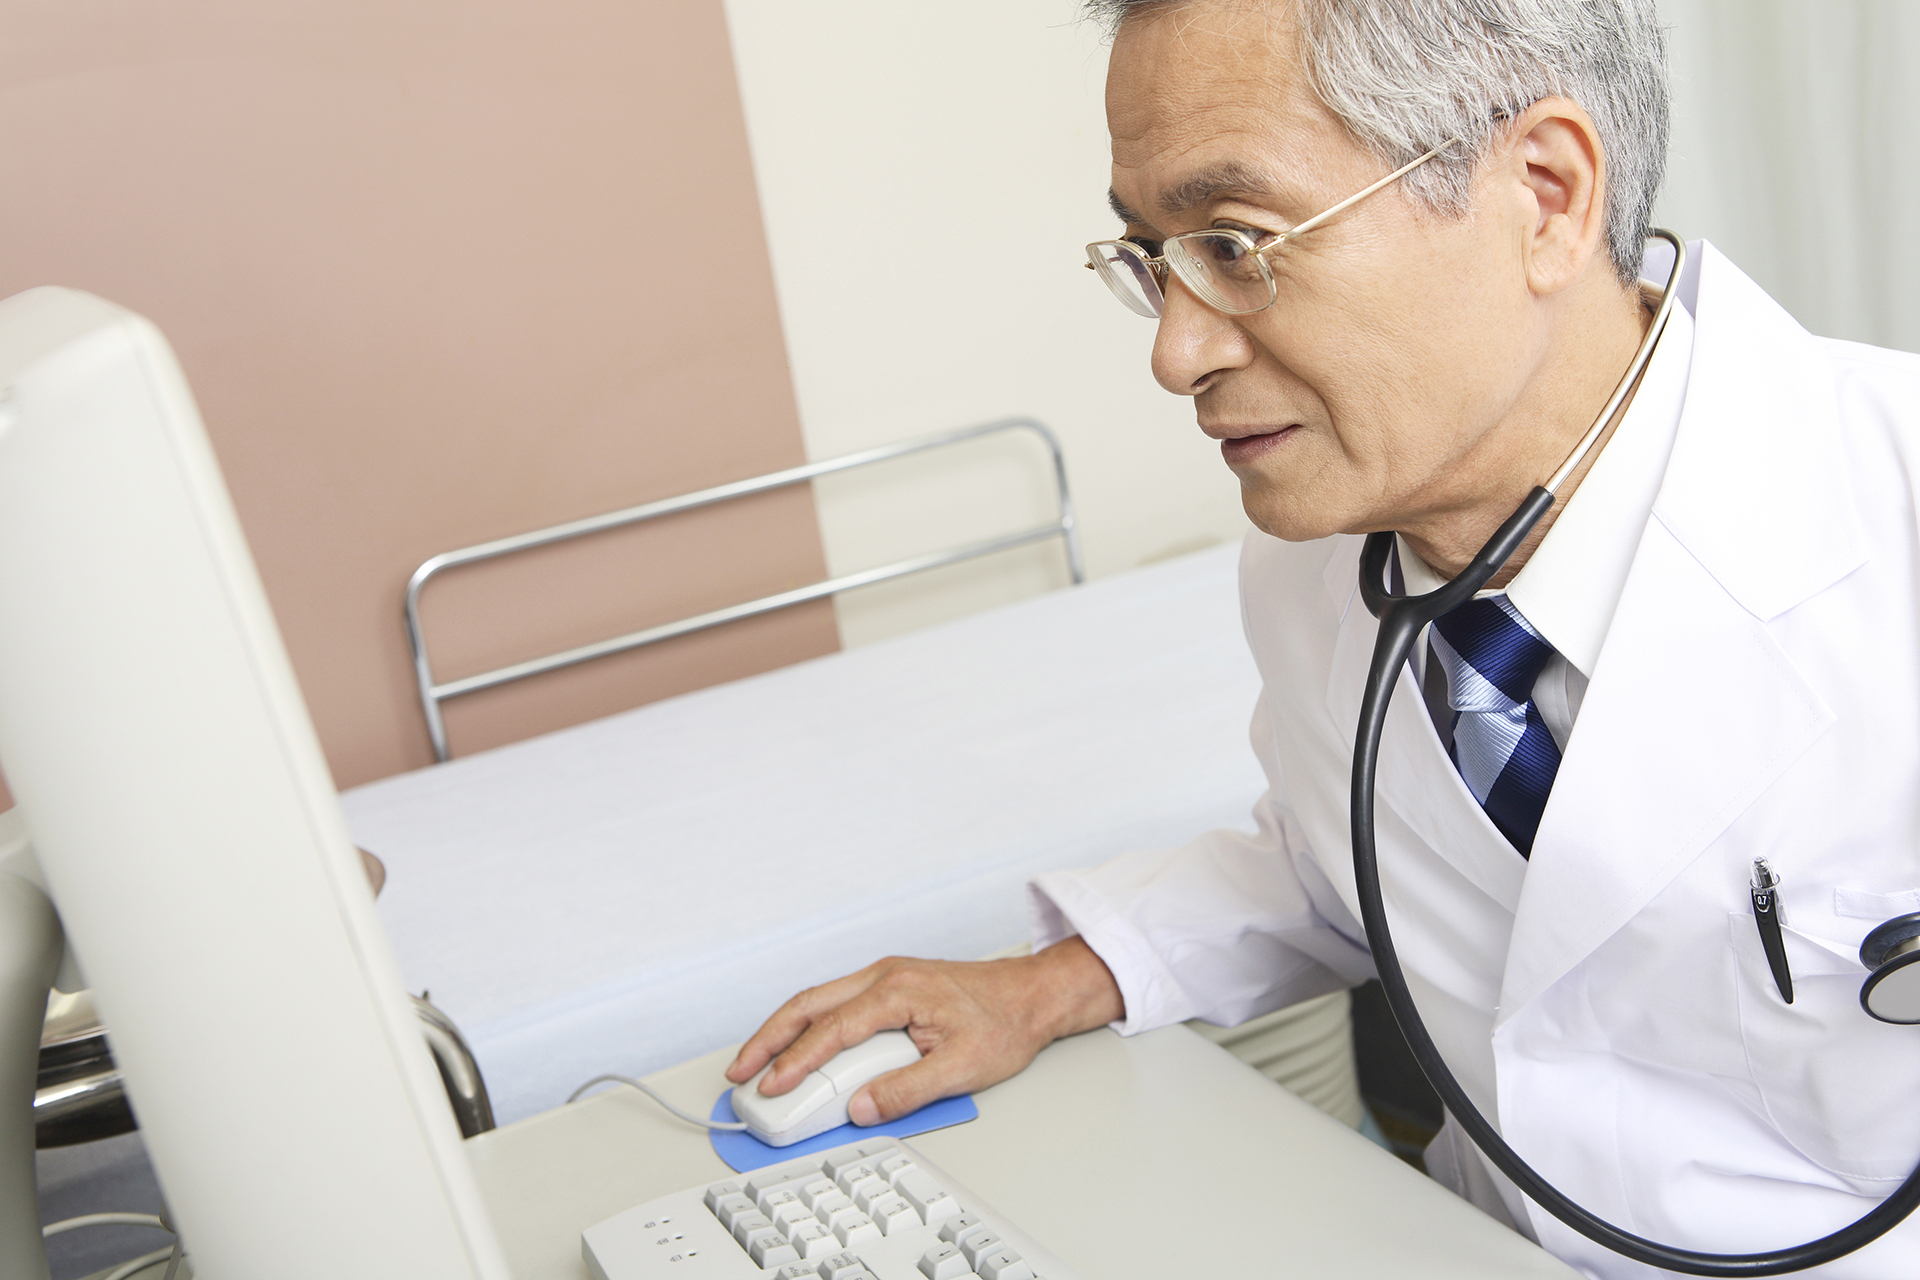 Asian doctor sitting at desk looking at computer screen